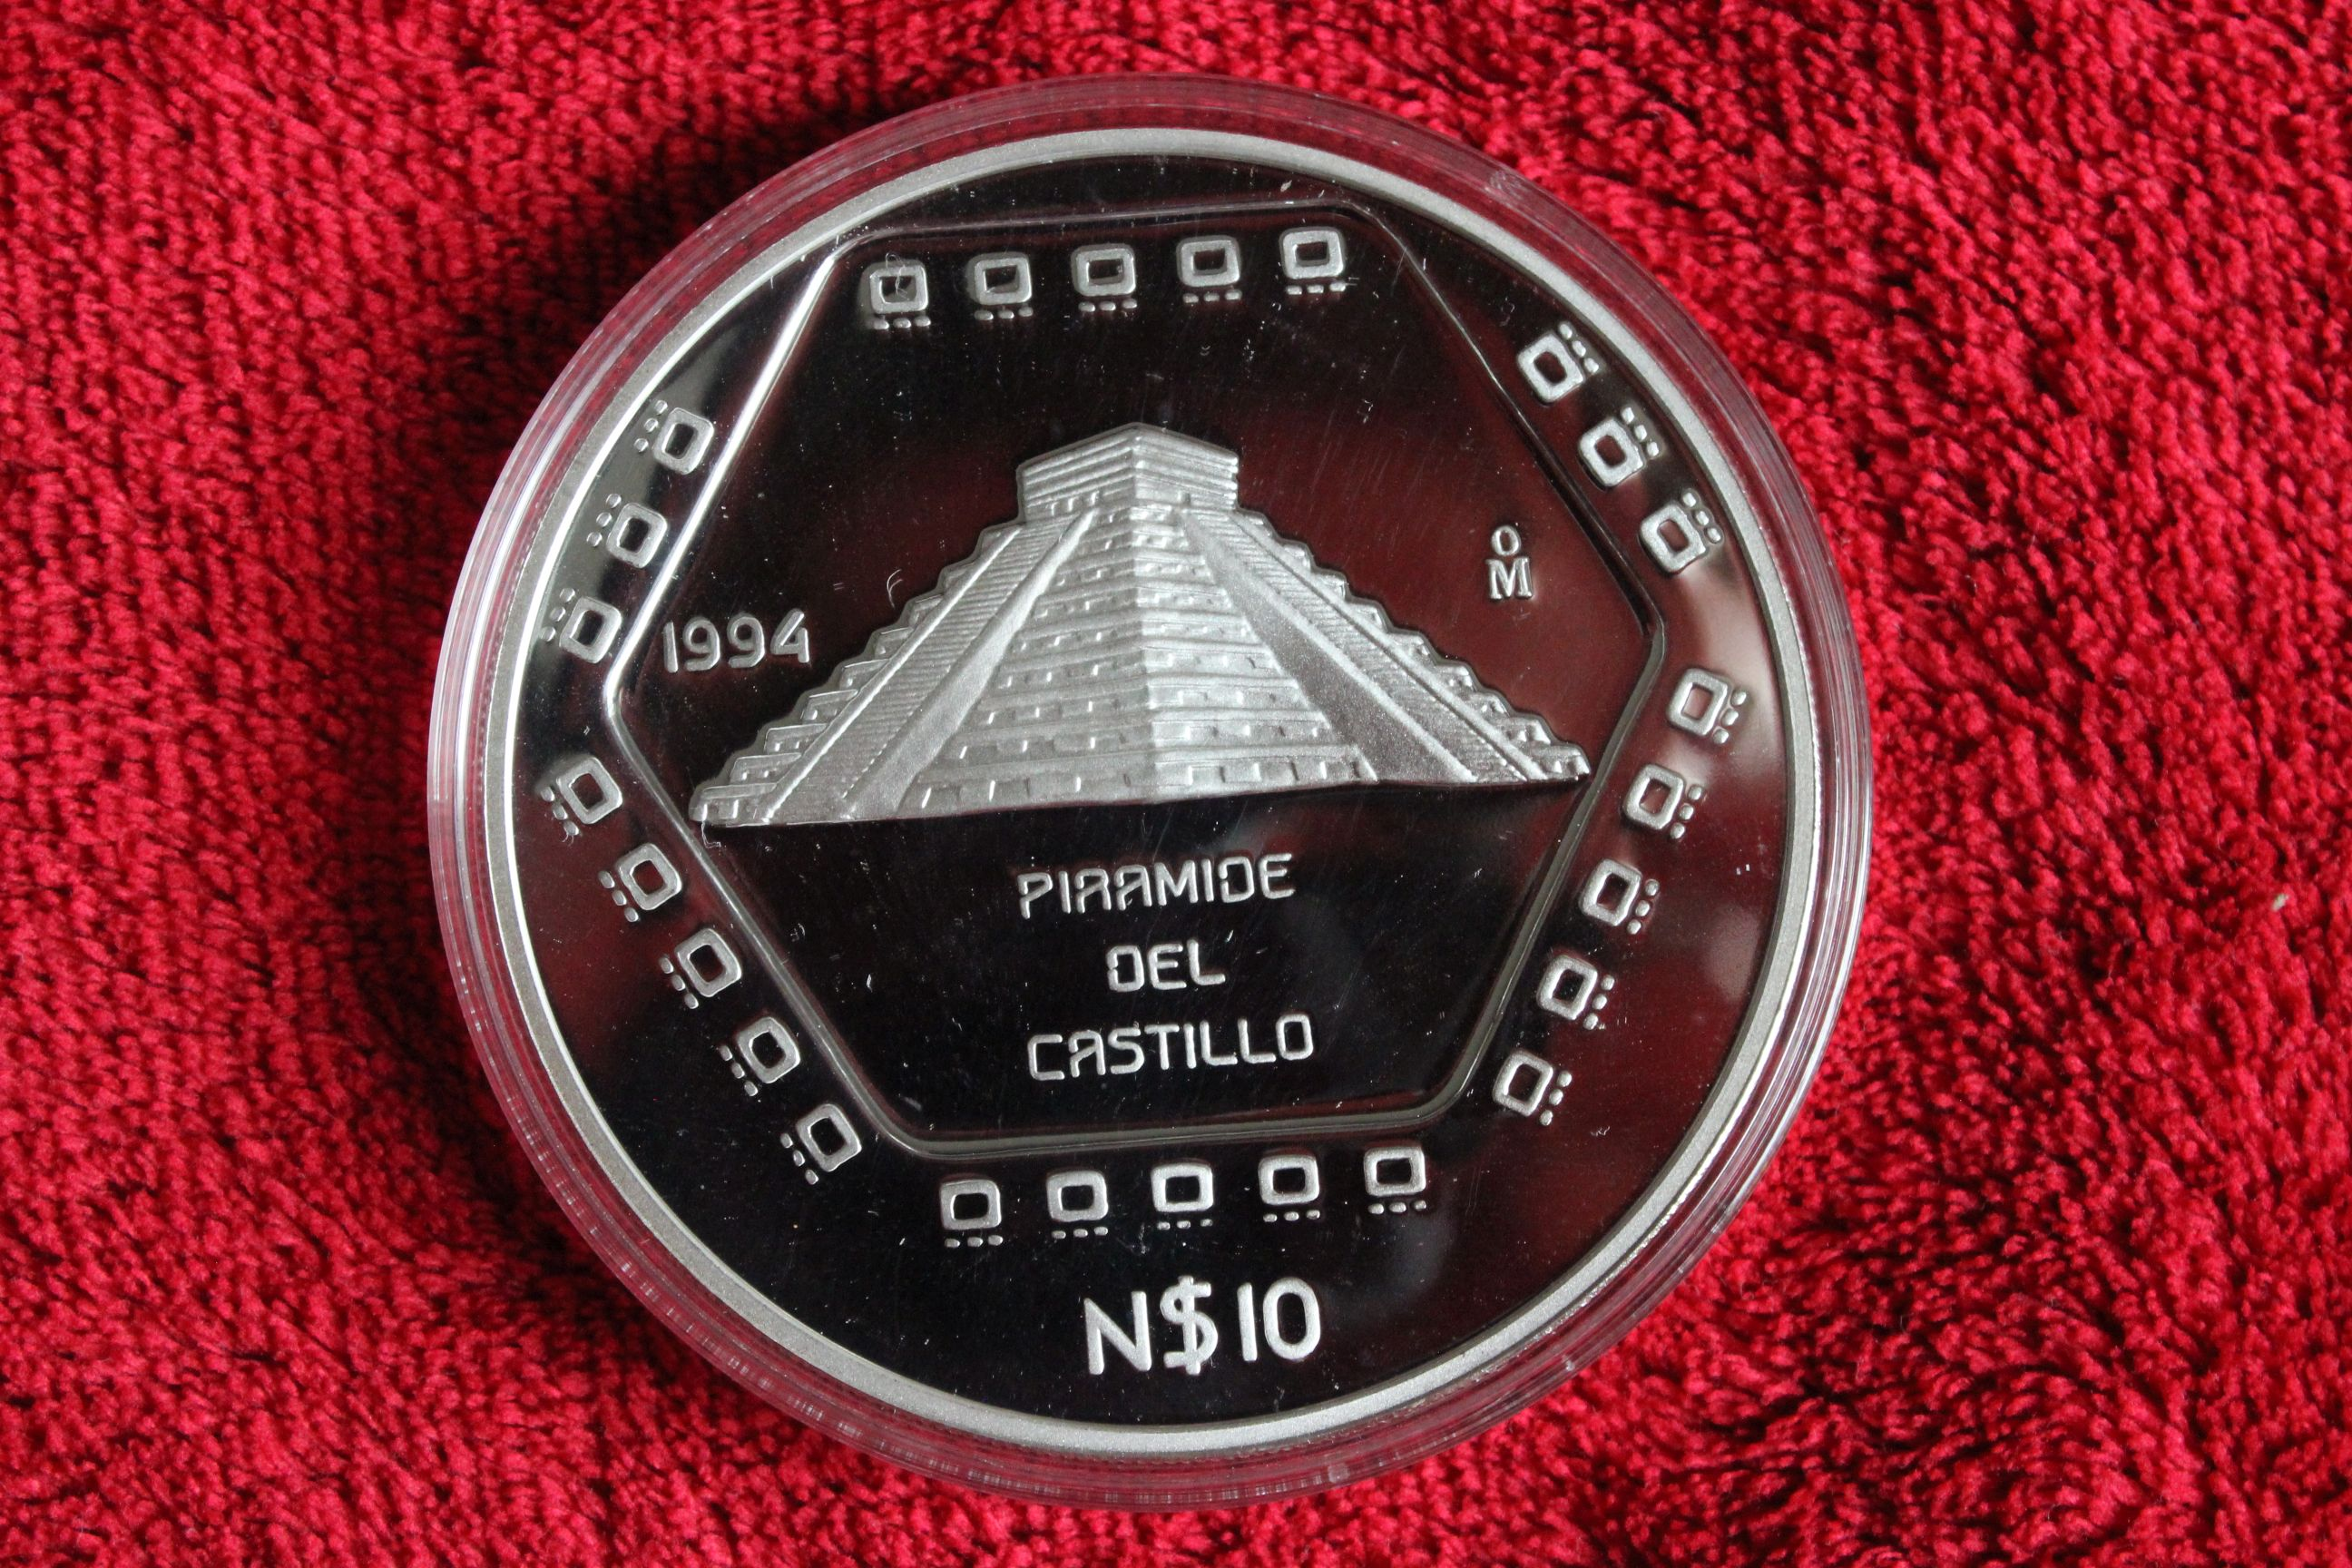 Mexiko_5oz_Piramide_del_castillo_pp.JPG